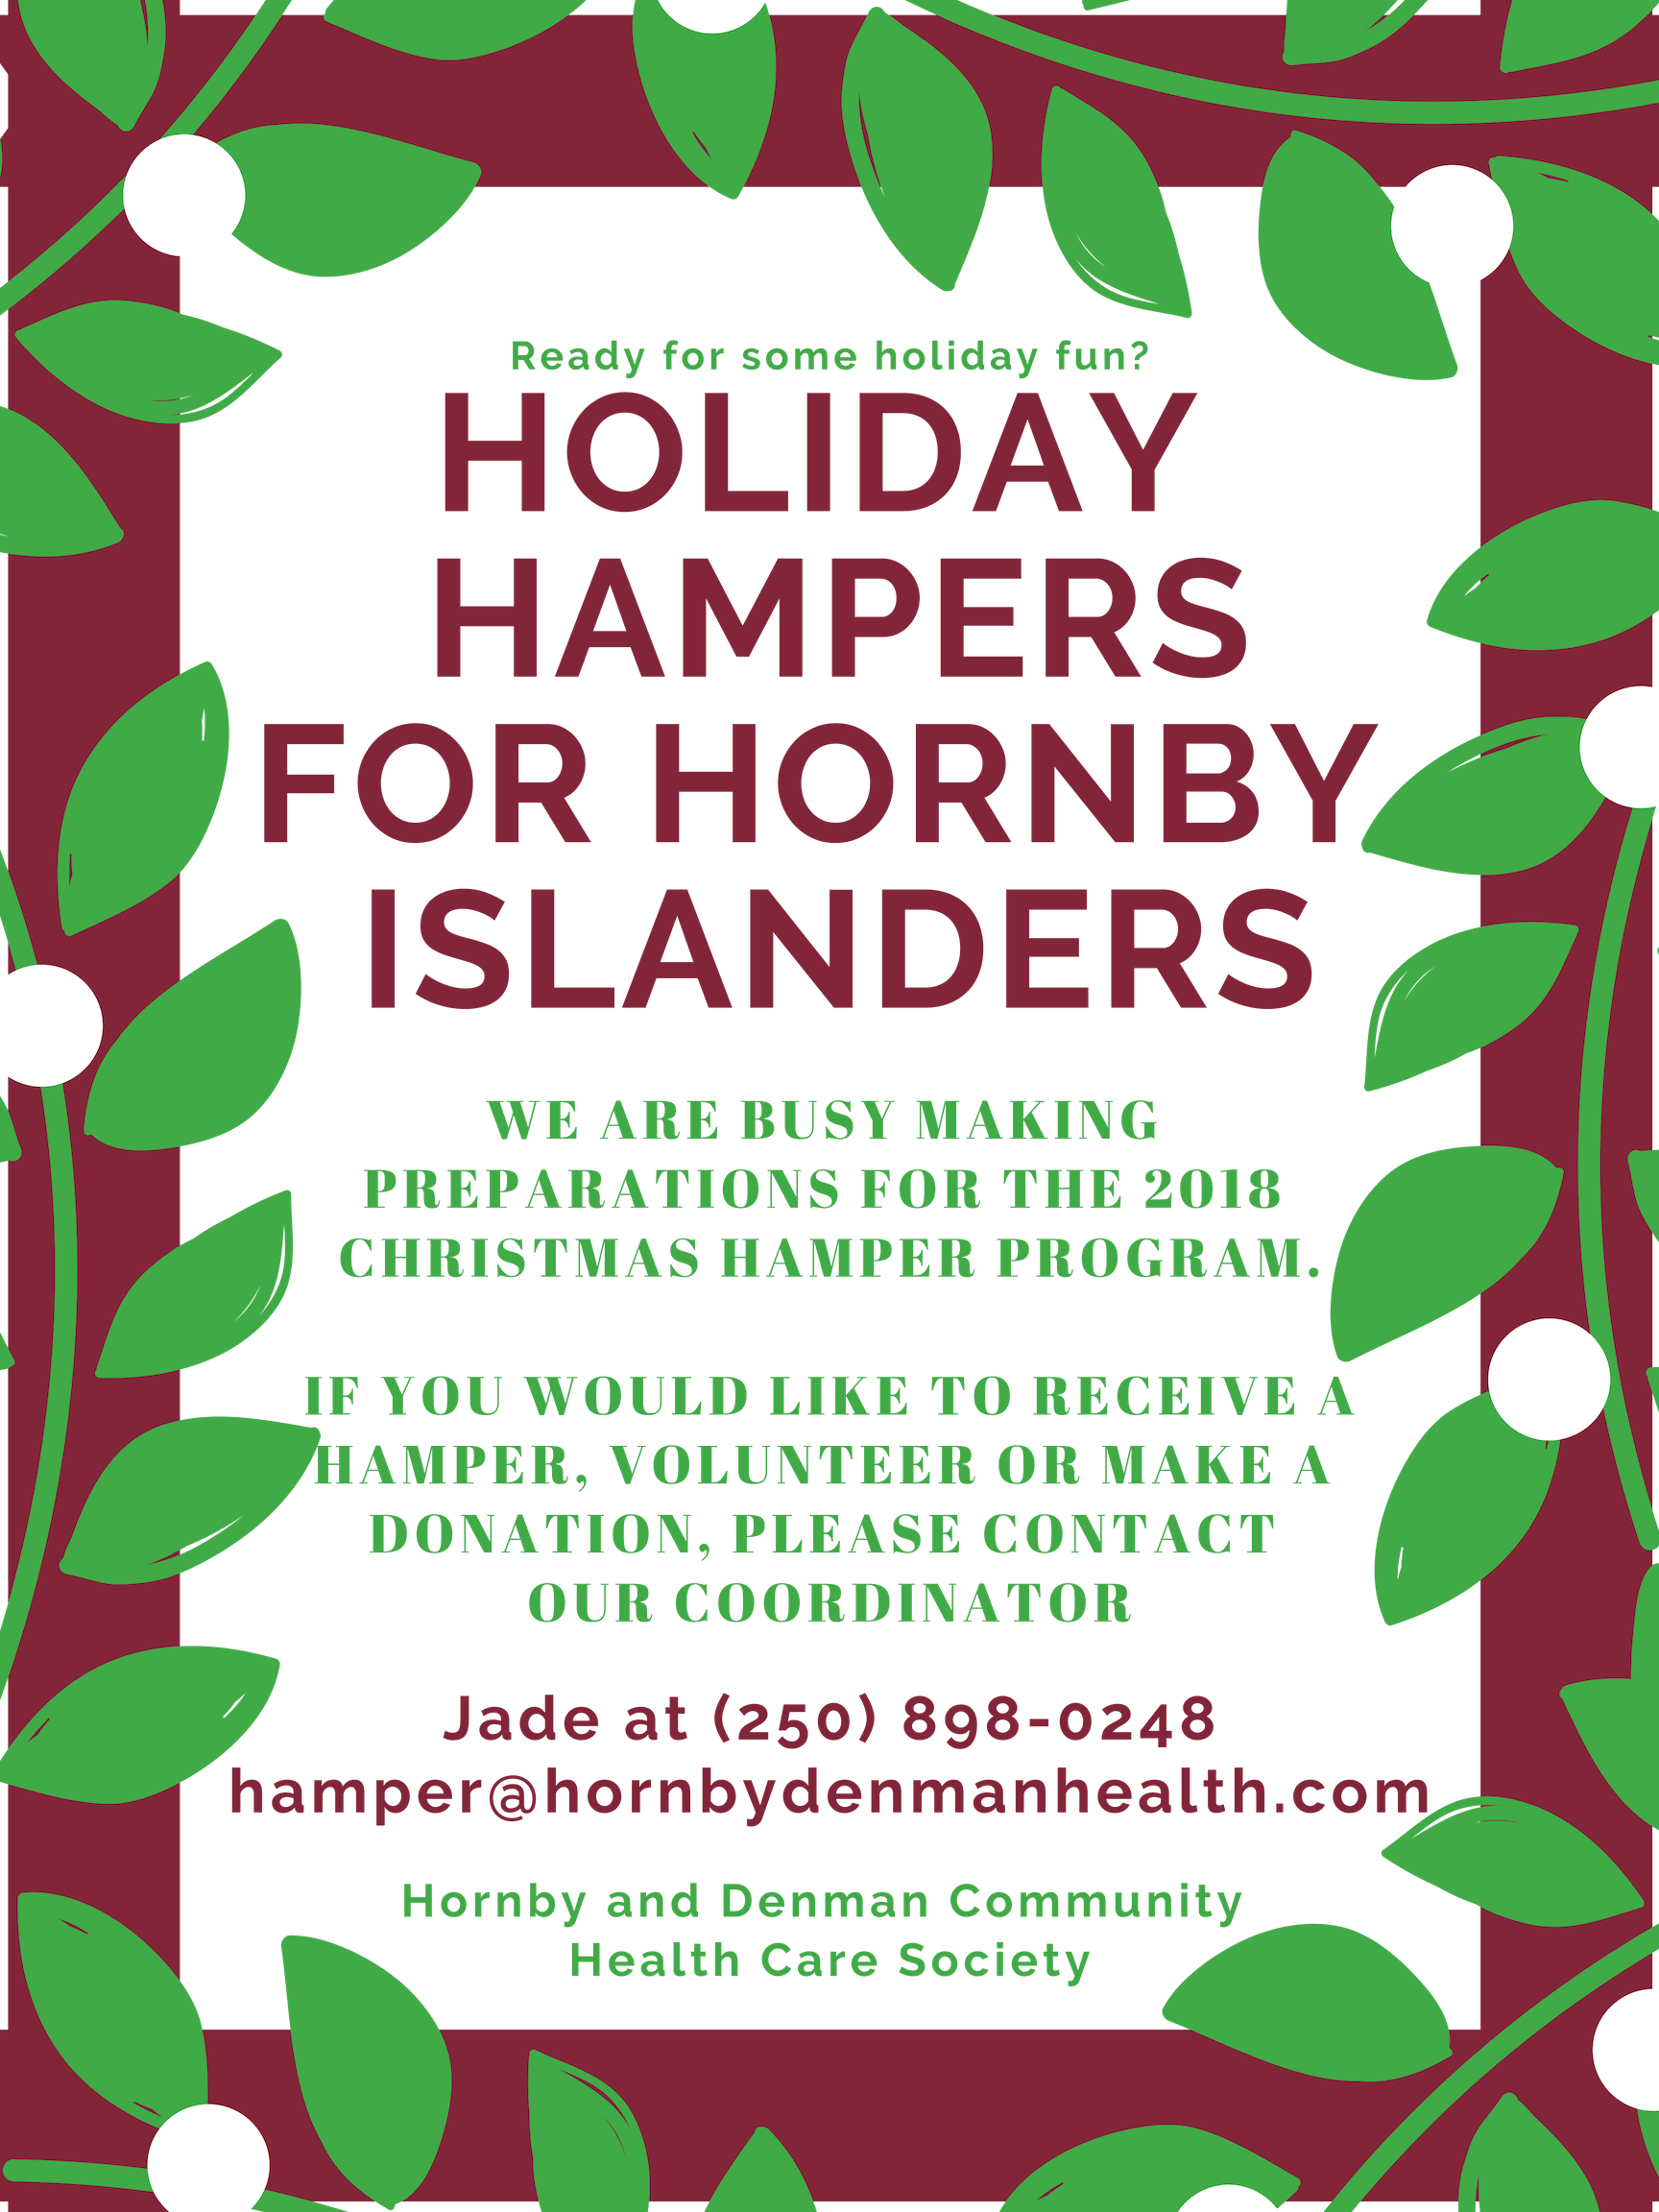 Holiday Hampers for Hornby Islanders